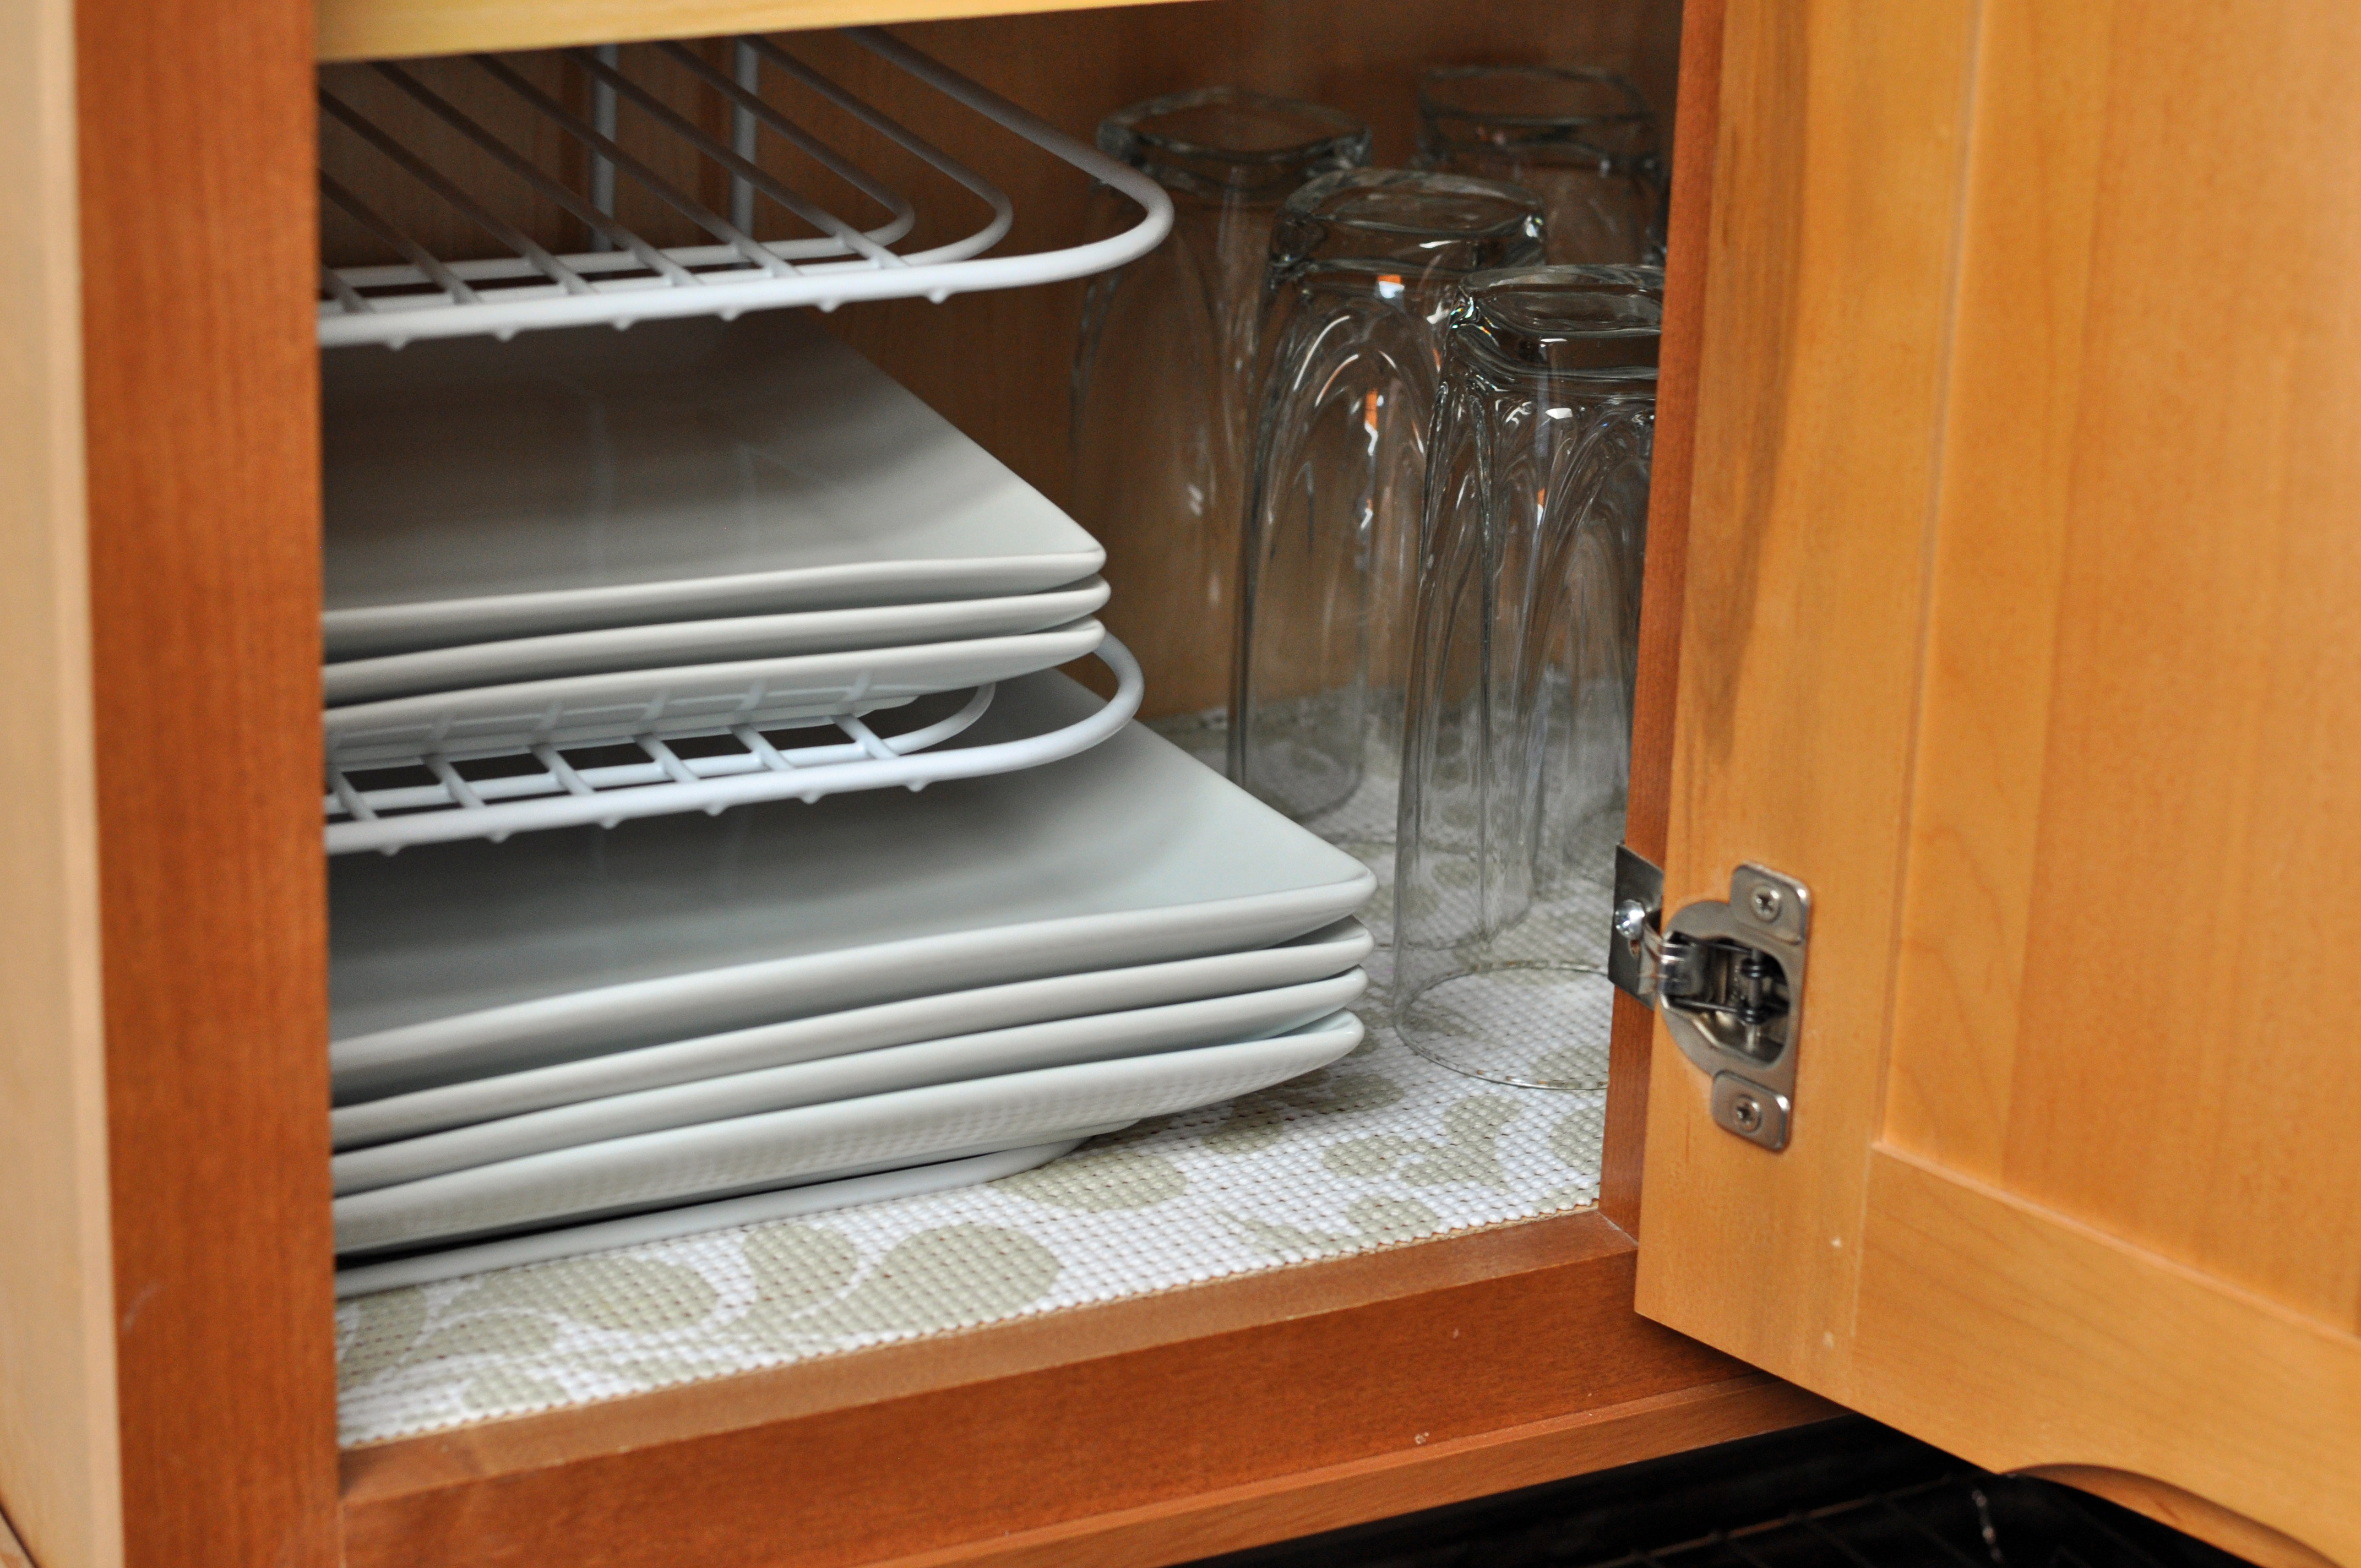 cabinets with duck brand s shelf liner